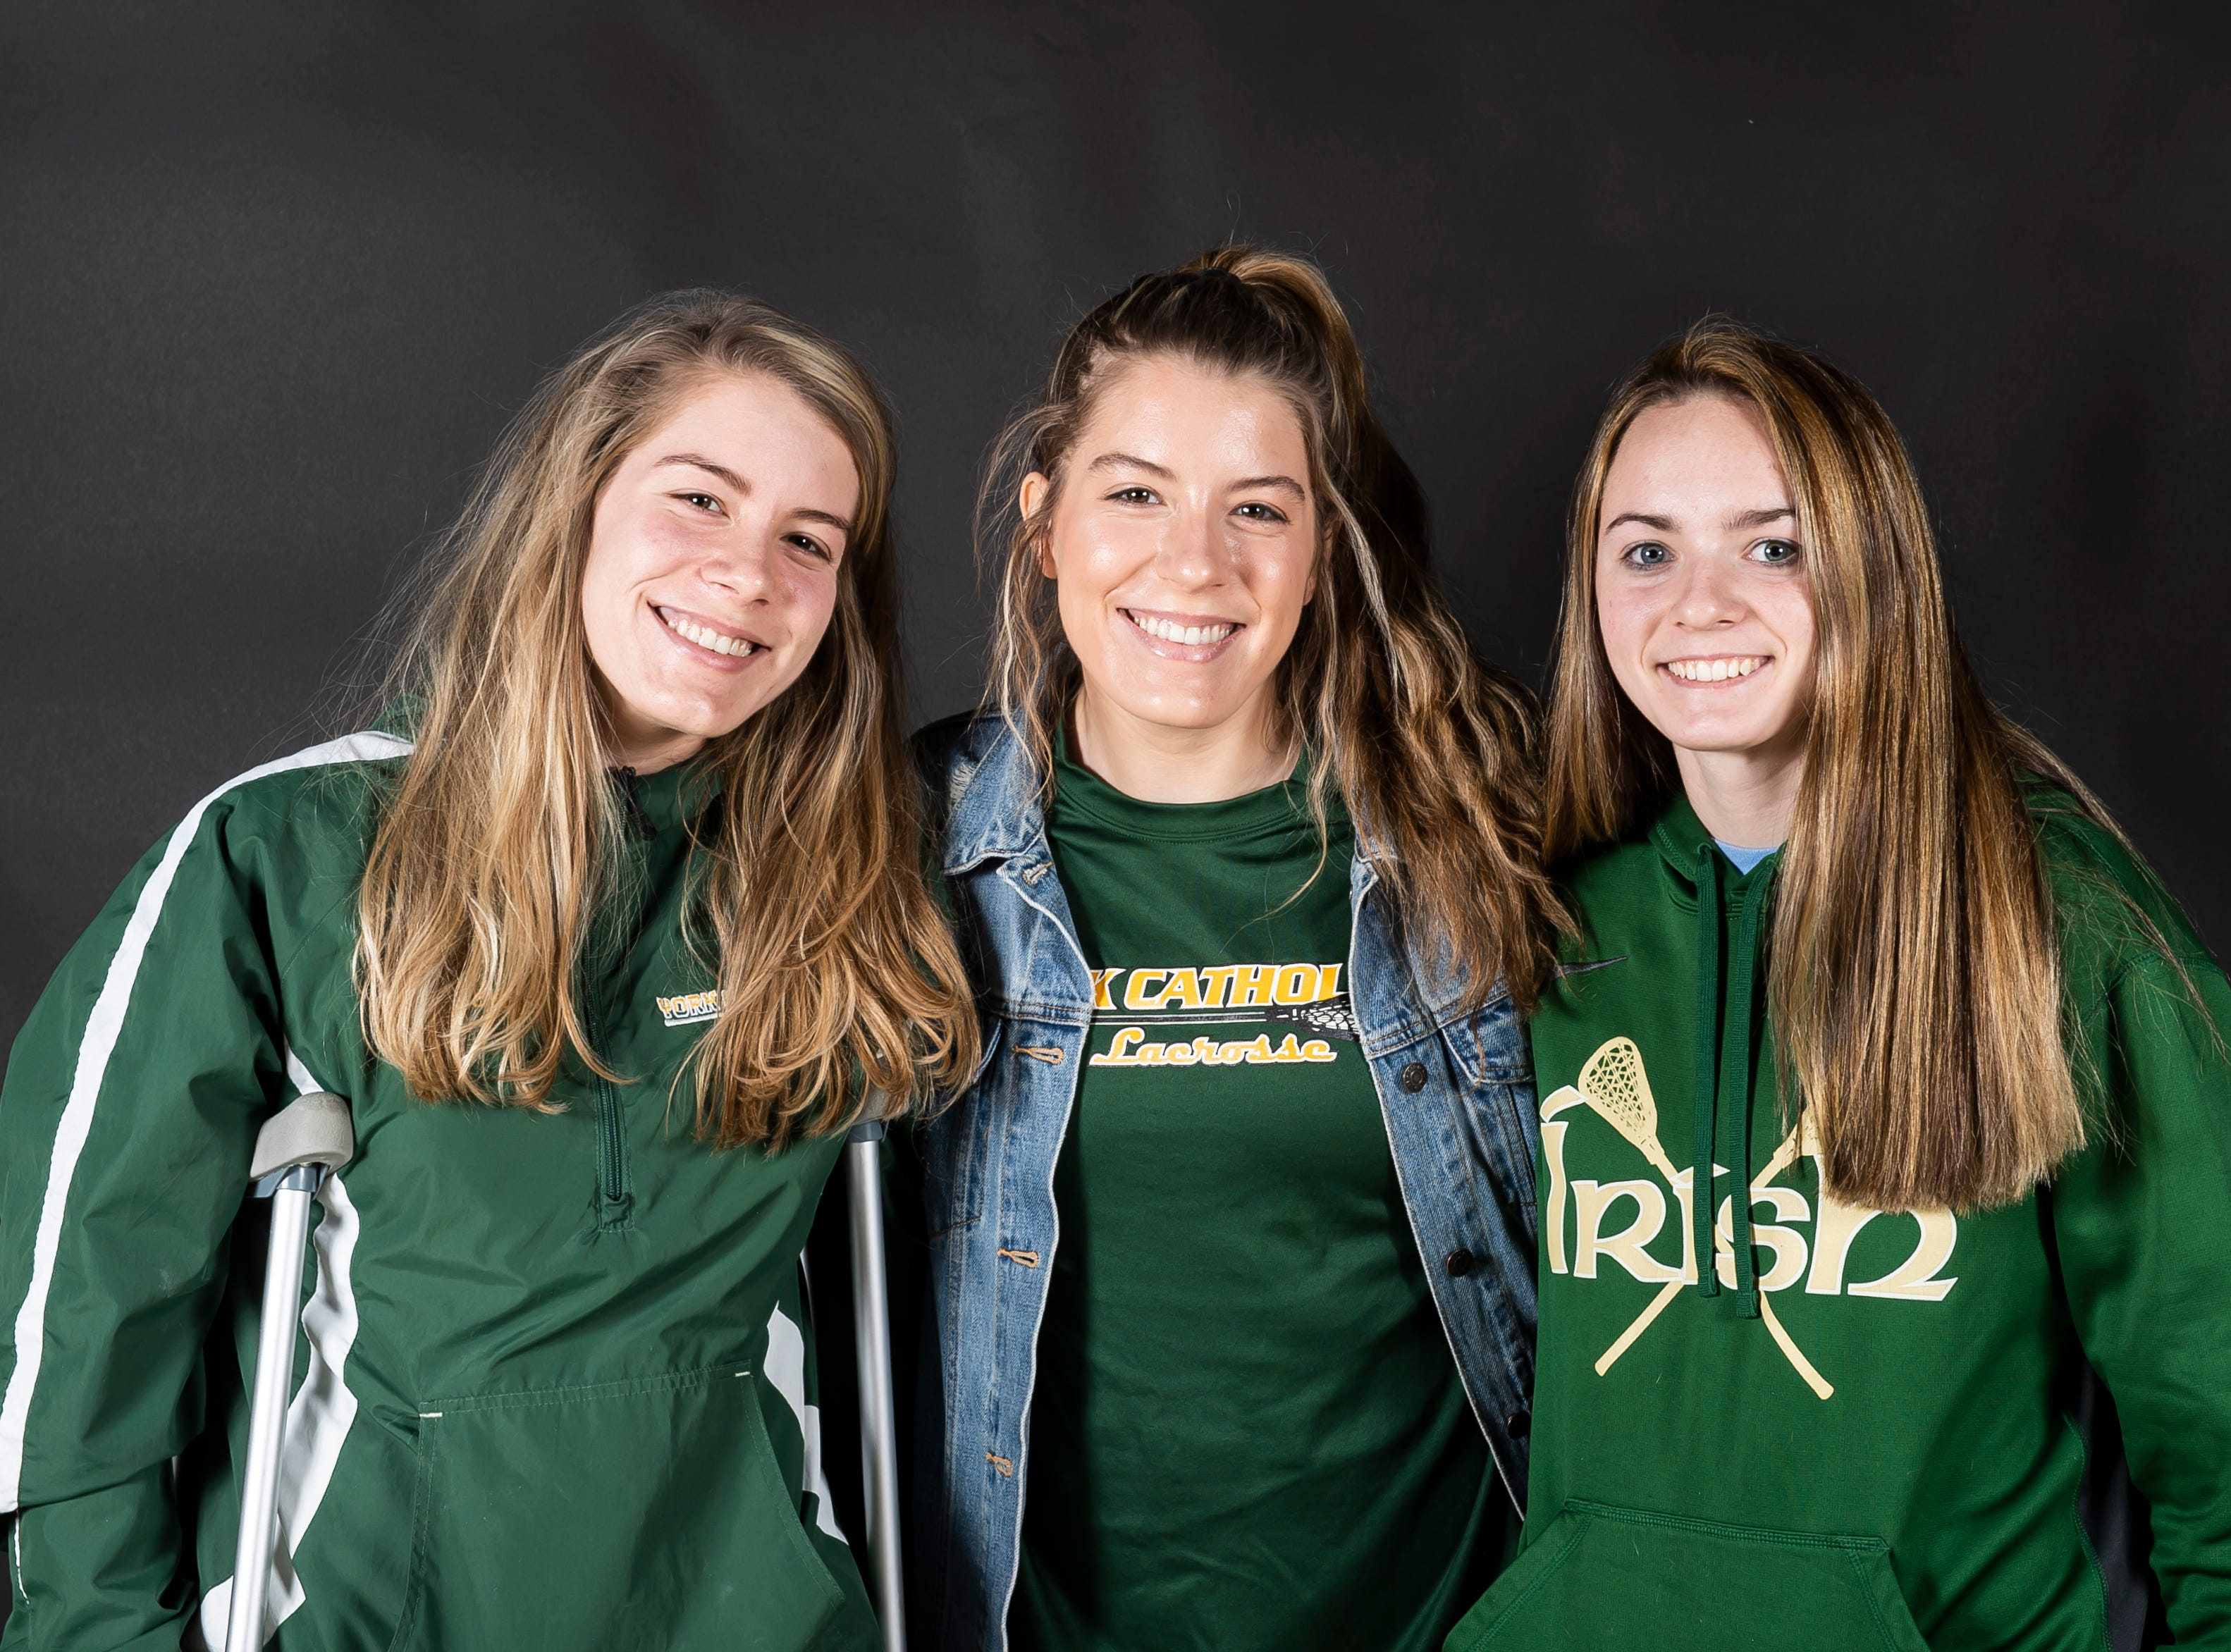 (From left) York Catholic lacrosse players Sarah Reed, Grace Reed and Phallon Kilduff pose in the GameTimePA photo booth during spring sports media day in York Sunday, March 10, 2019.